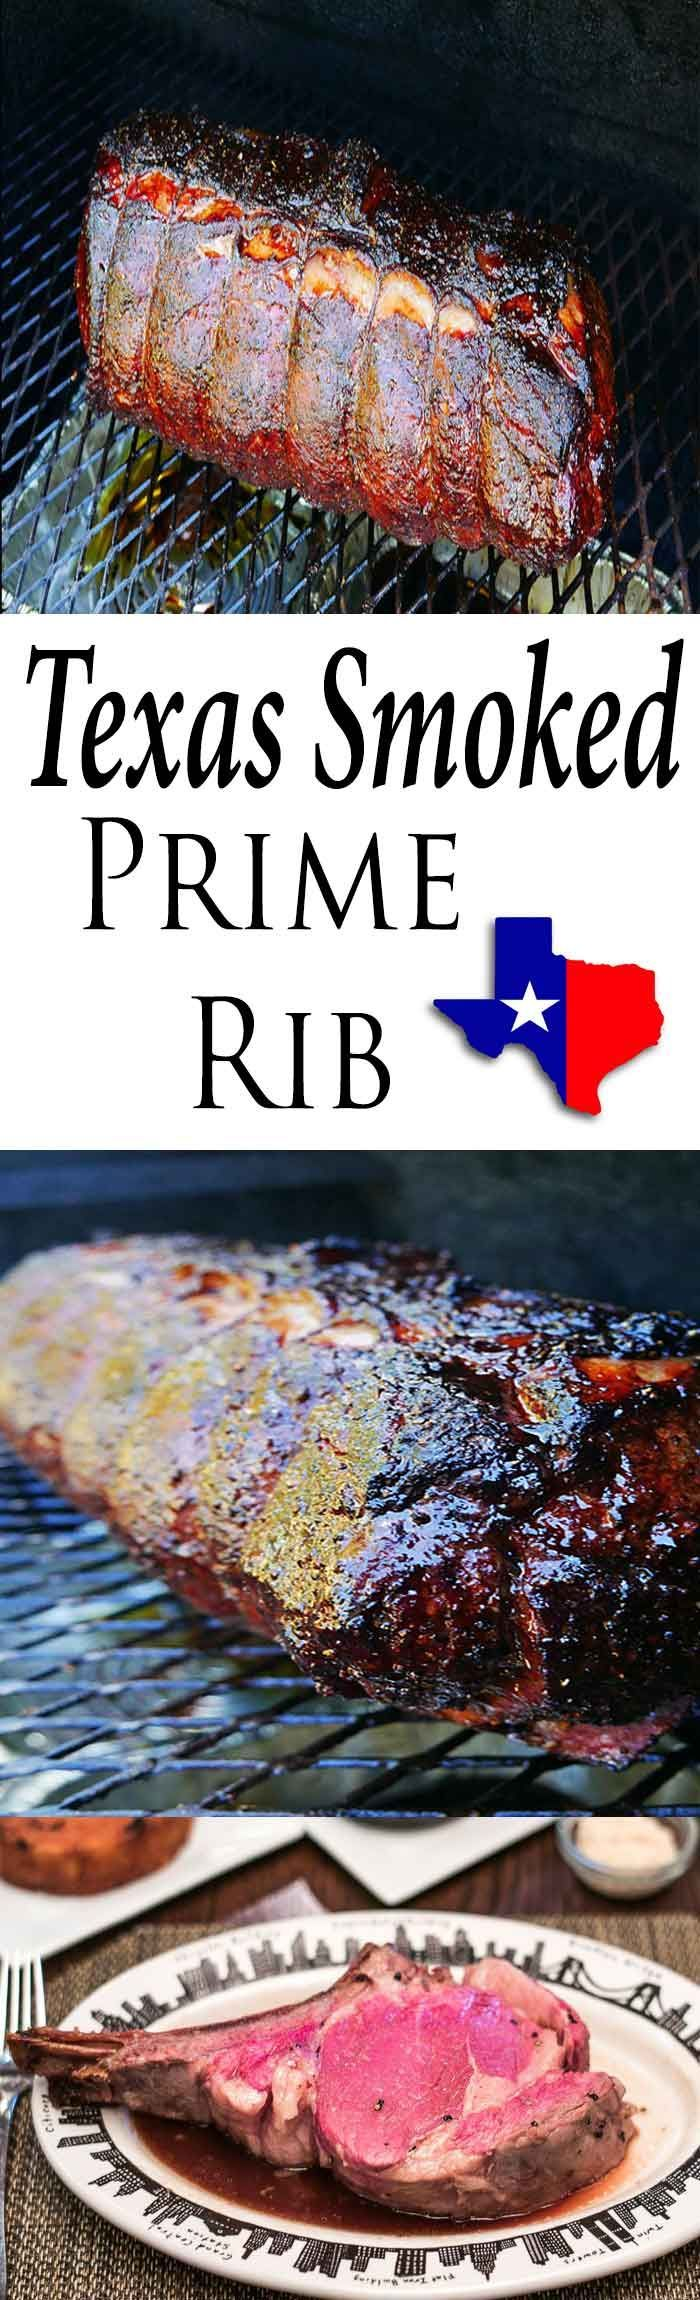 Real Traditional Texas Smoked Prime Rib. Welcome from Austin Texas!  Each year we get together and have Friends. Giving out at the ranch. Our favorite thing to cook is huge cuts of meat. From Beef to the whole hog to wild game. Cooking a traditional Texas smoked prime rib is not hard if you follow the steps outlined here today in this article. https://www.butter-n-thyme.com #primerib #beef #traditional #bbq